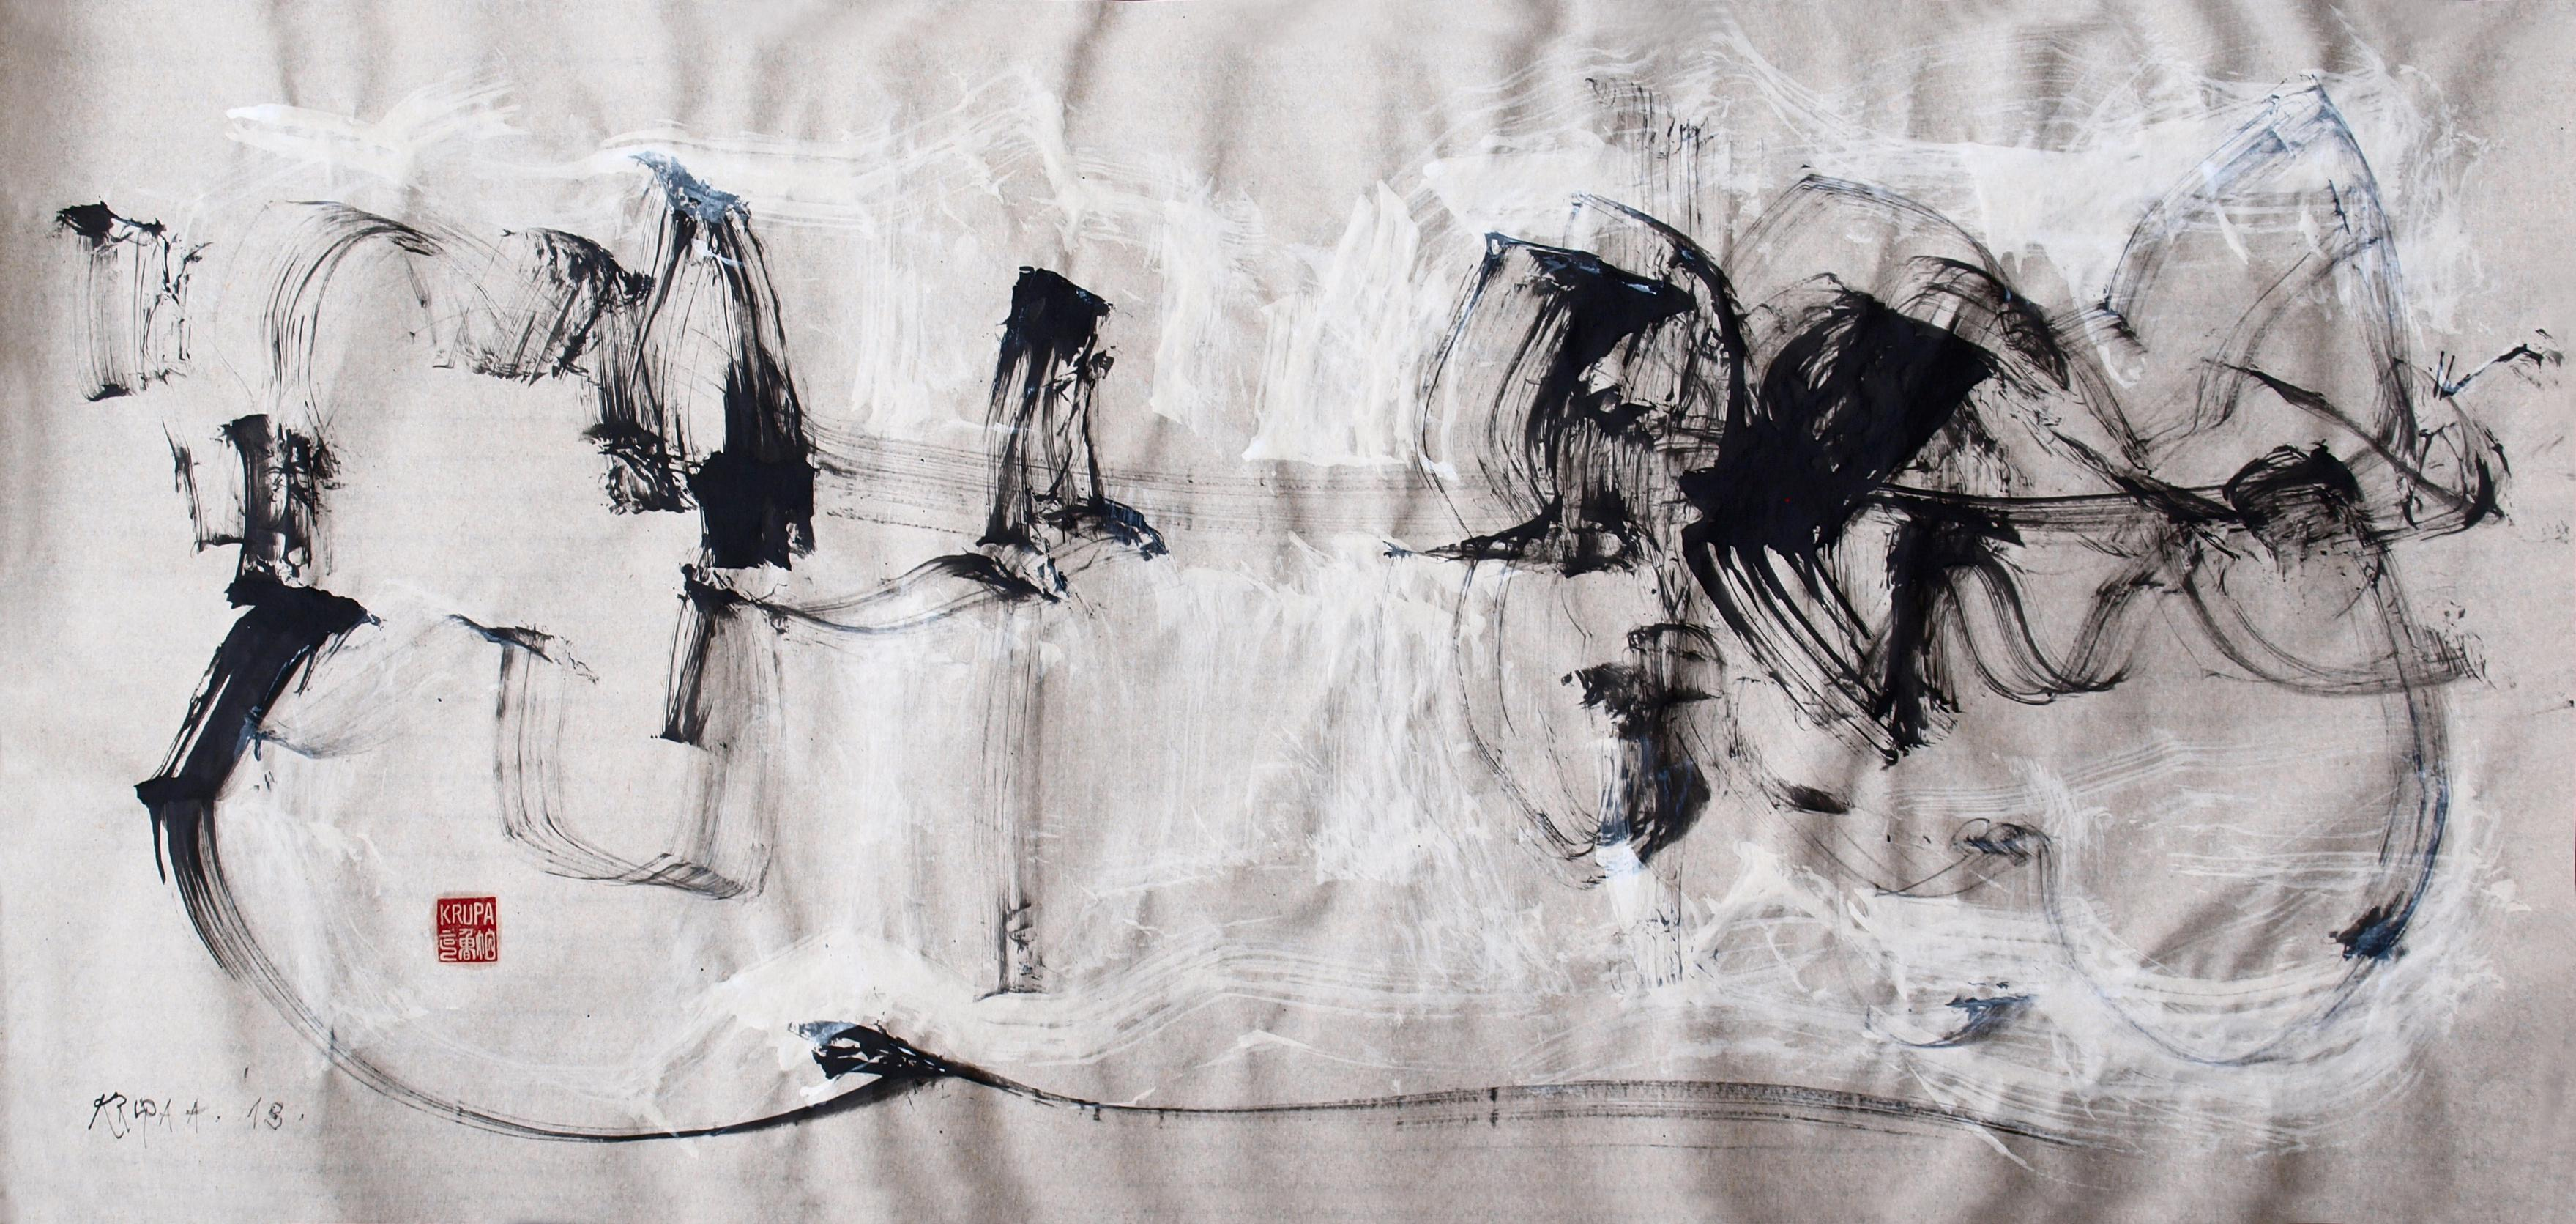 At the River, Contemporary Abstract Ink Painting Expressionist Landscape Paper